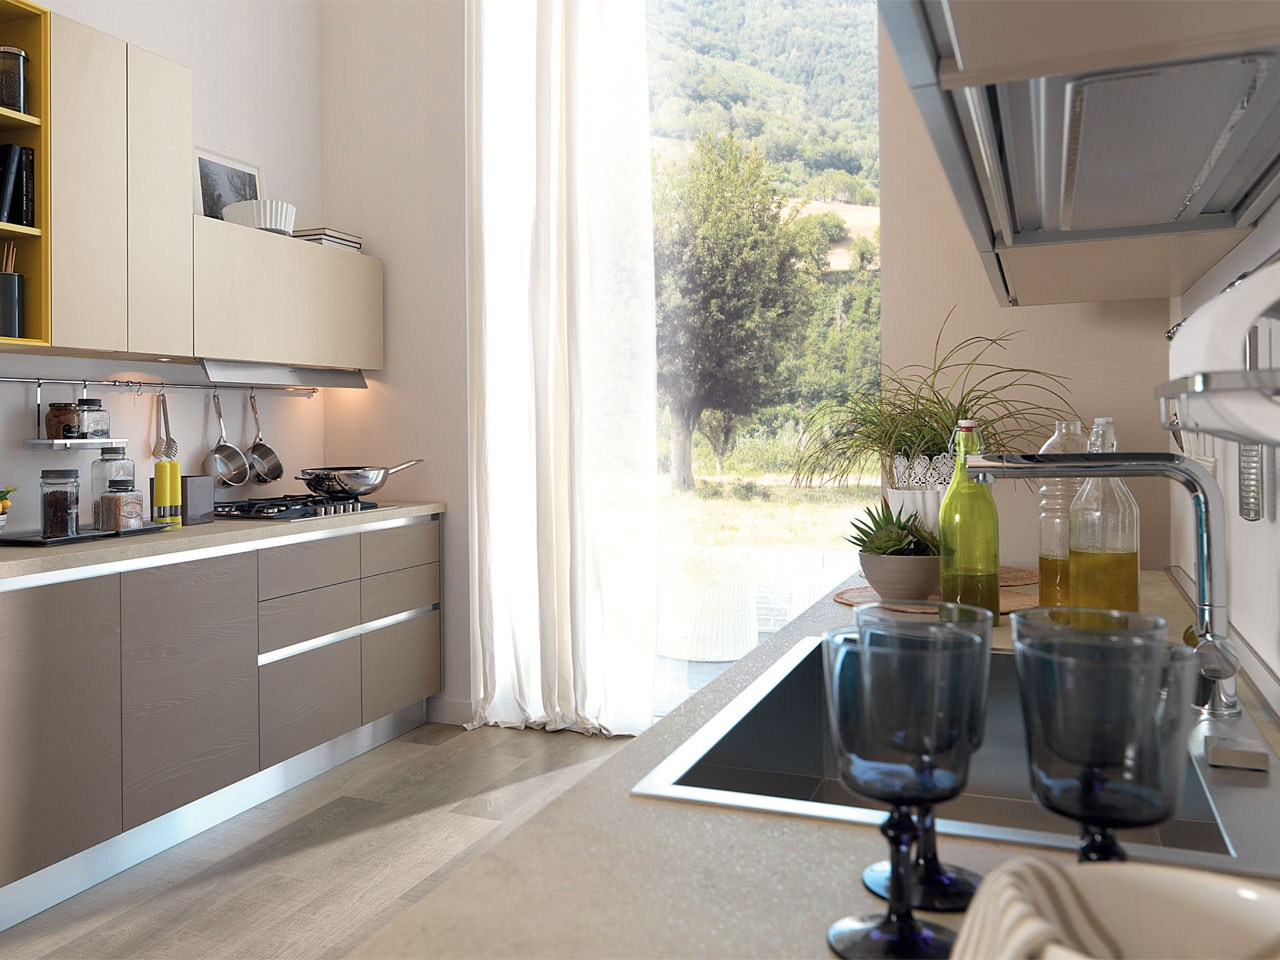 Cucina Lube Essenza Pino Kaki Essenza Kitchen Without Handles By Cucine Lube